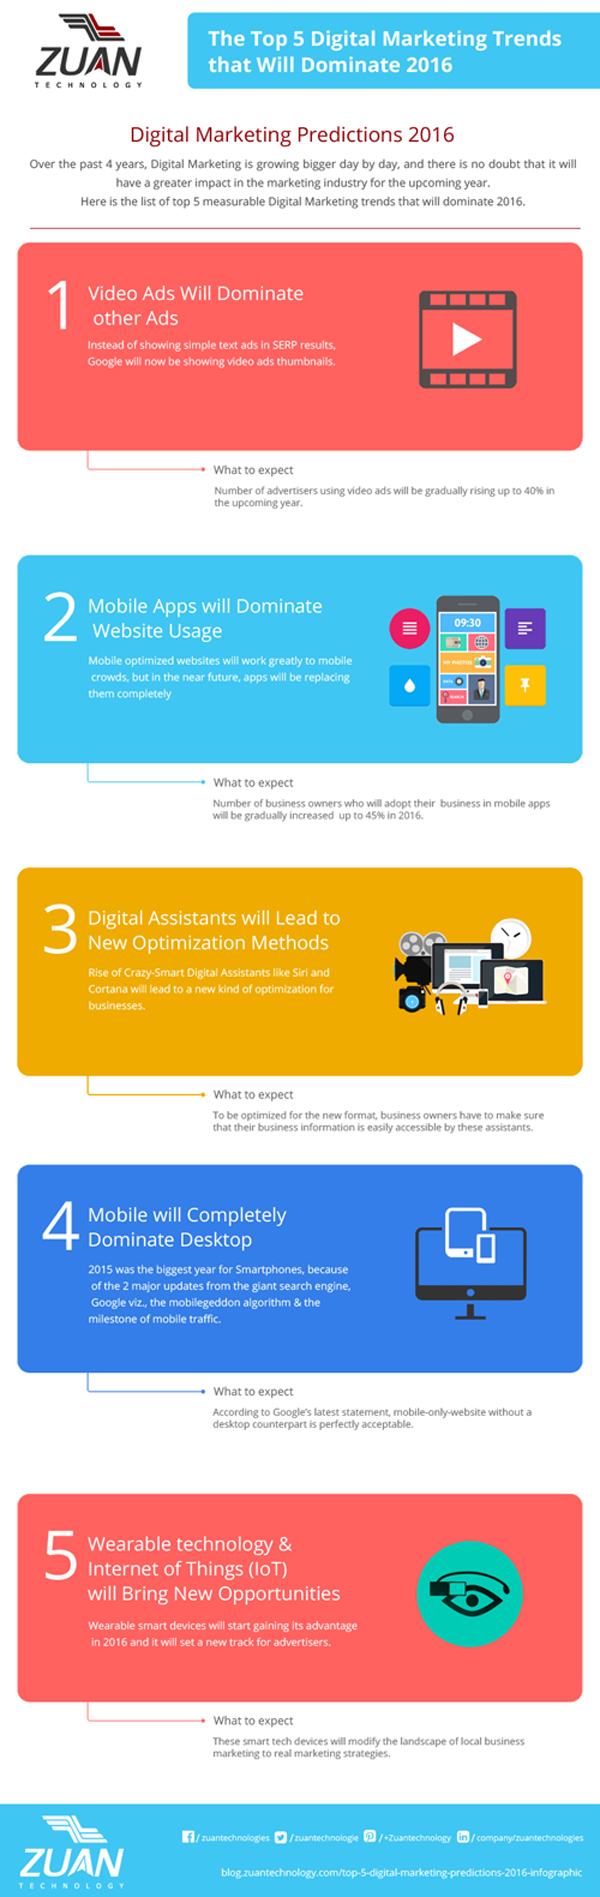 Top 5 Digital marketing predictions for 2016 infographic